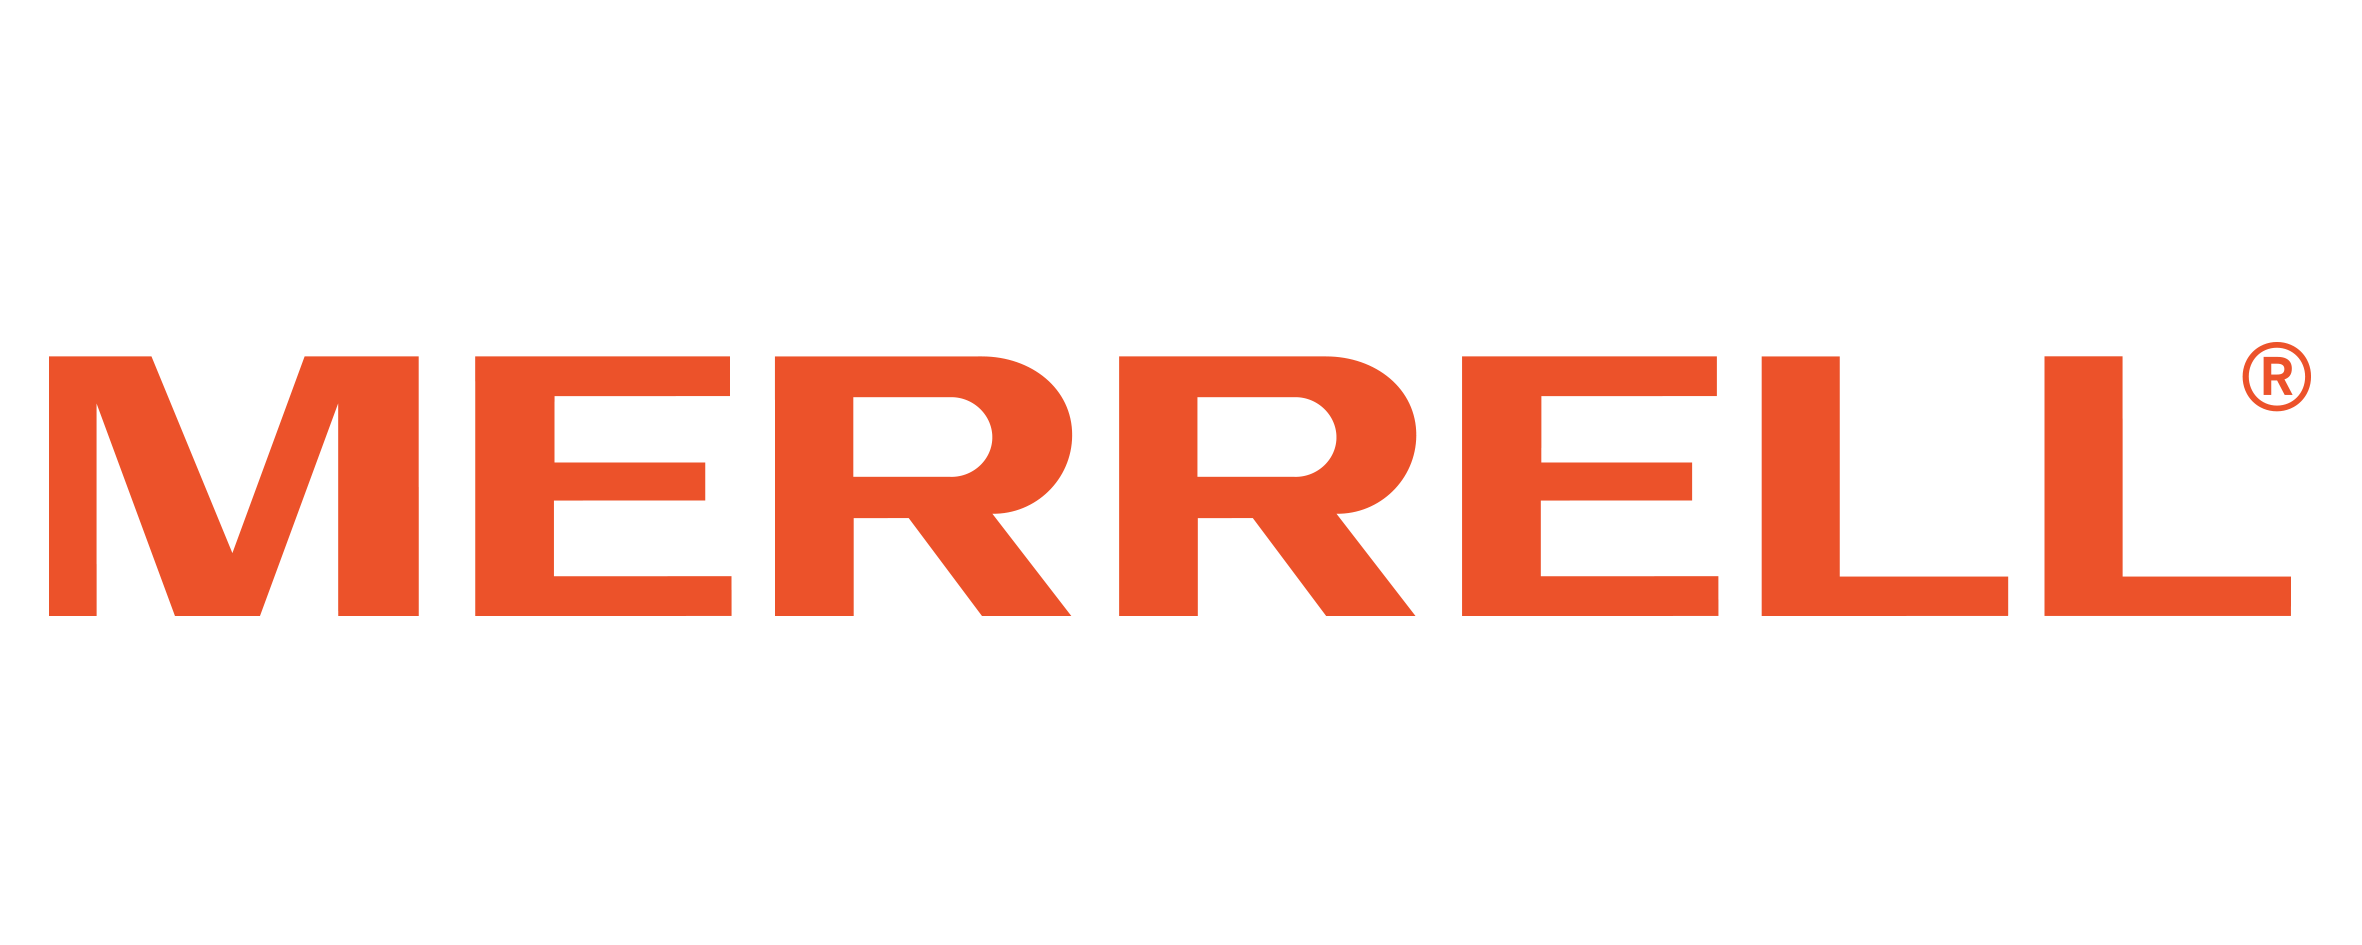 brand-banner.png